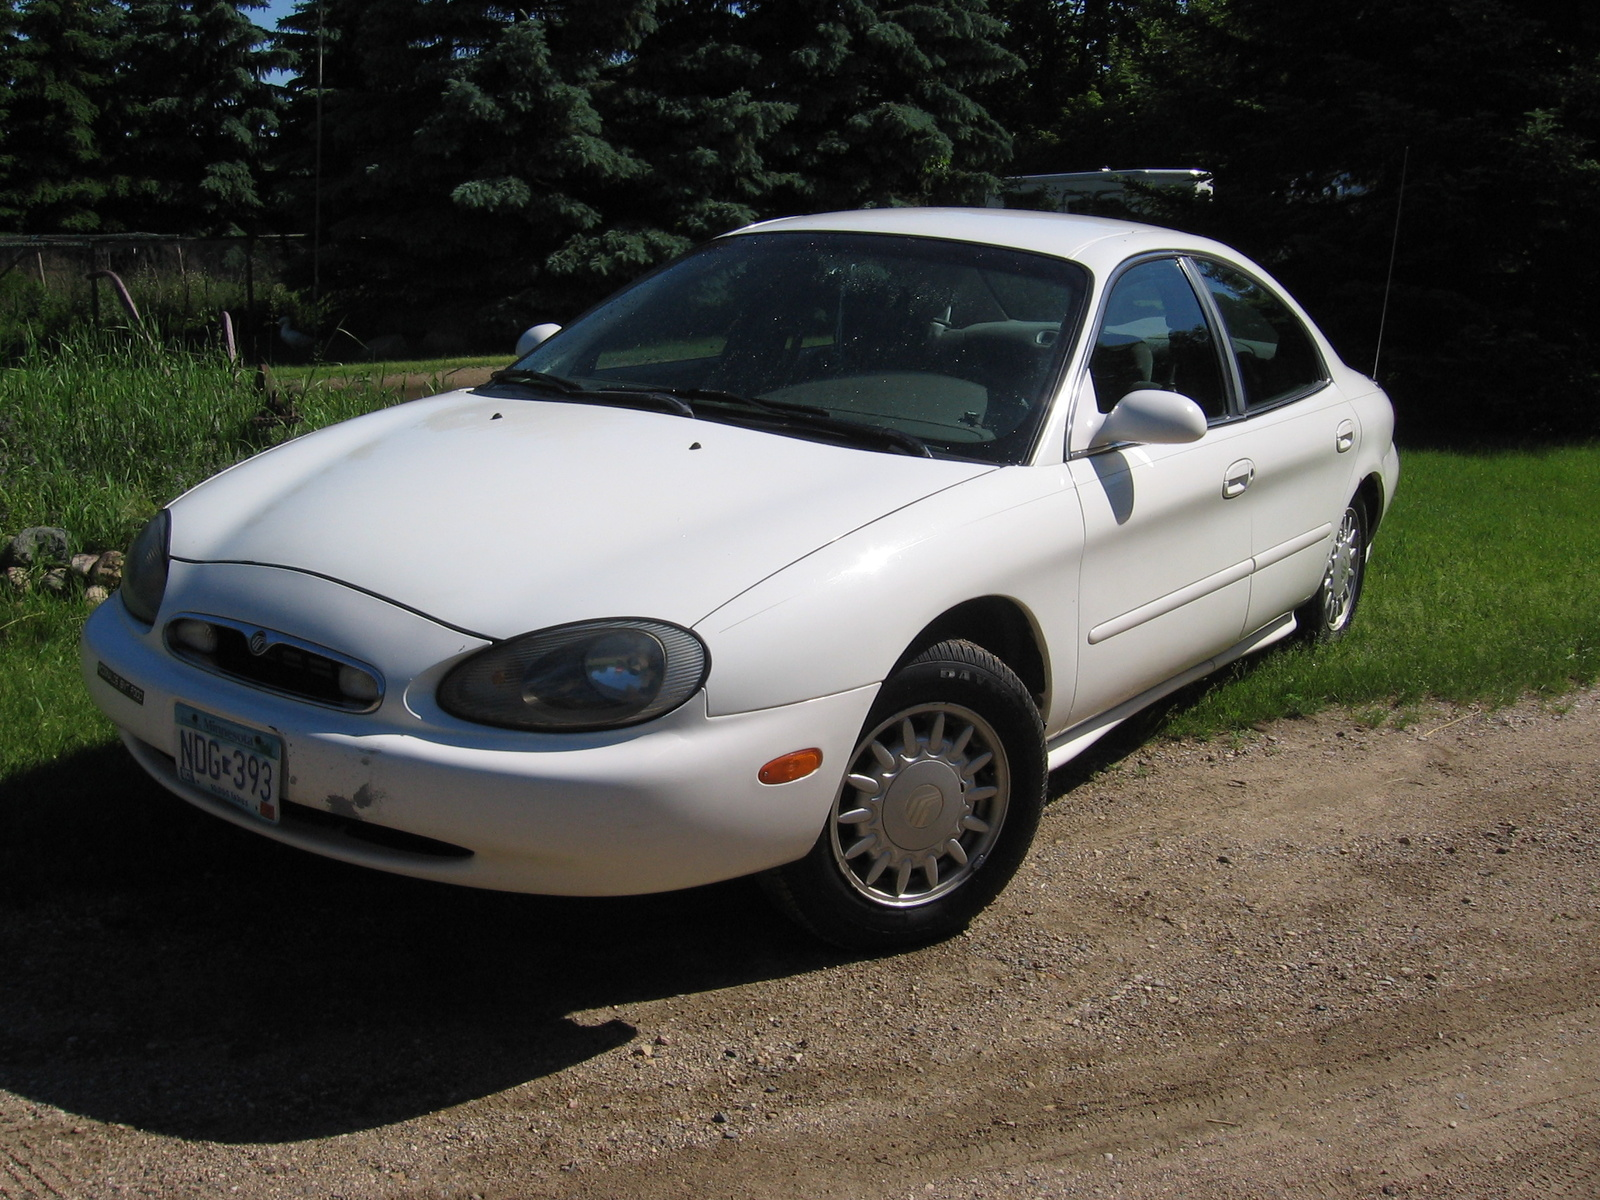 Picture of 1997 Mercury Sable 4 Dr GS Sedan